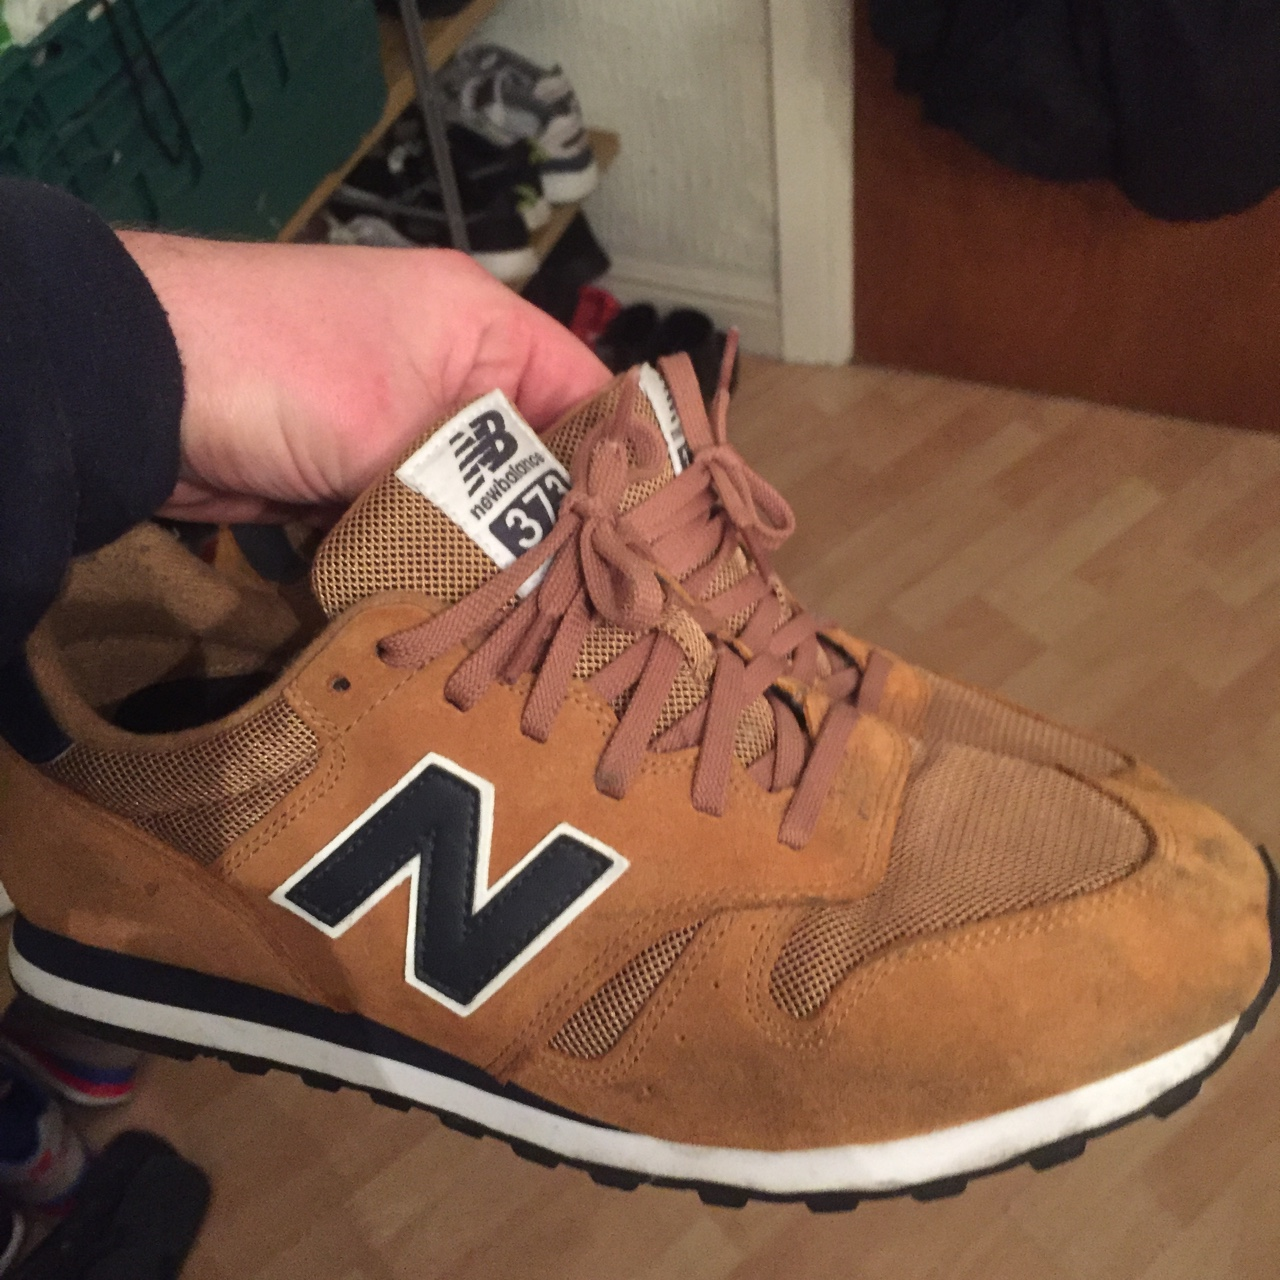 New Balance 373 Tan barely worn, would